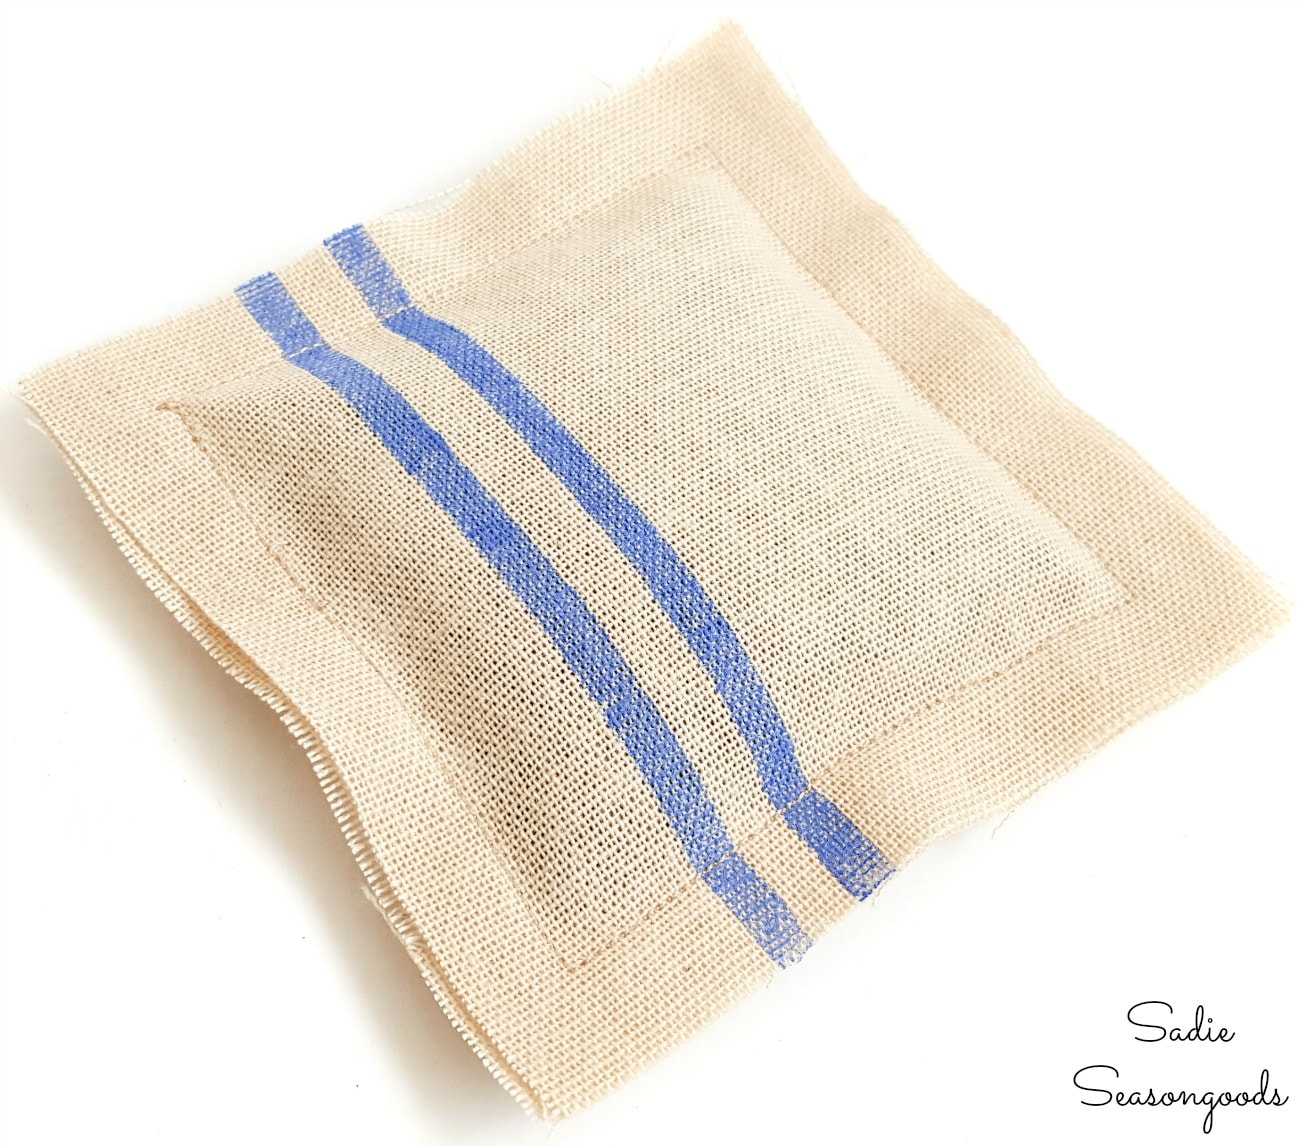 Scented sachet that looks like French grain sack fabric